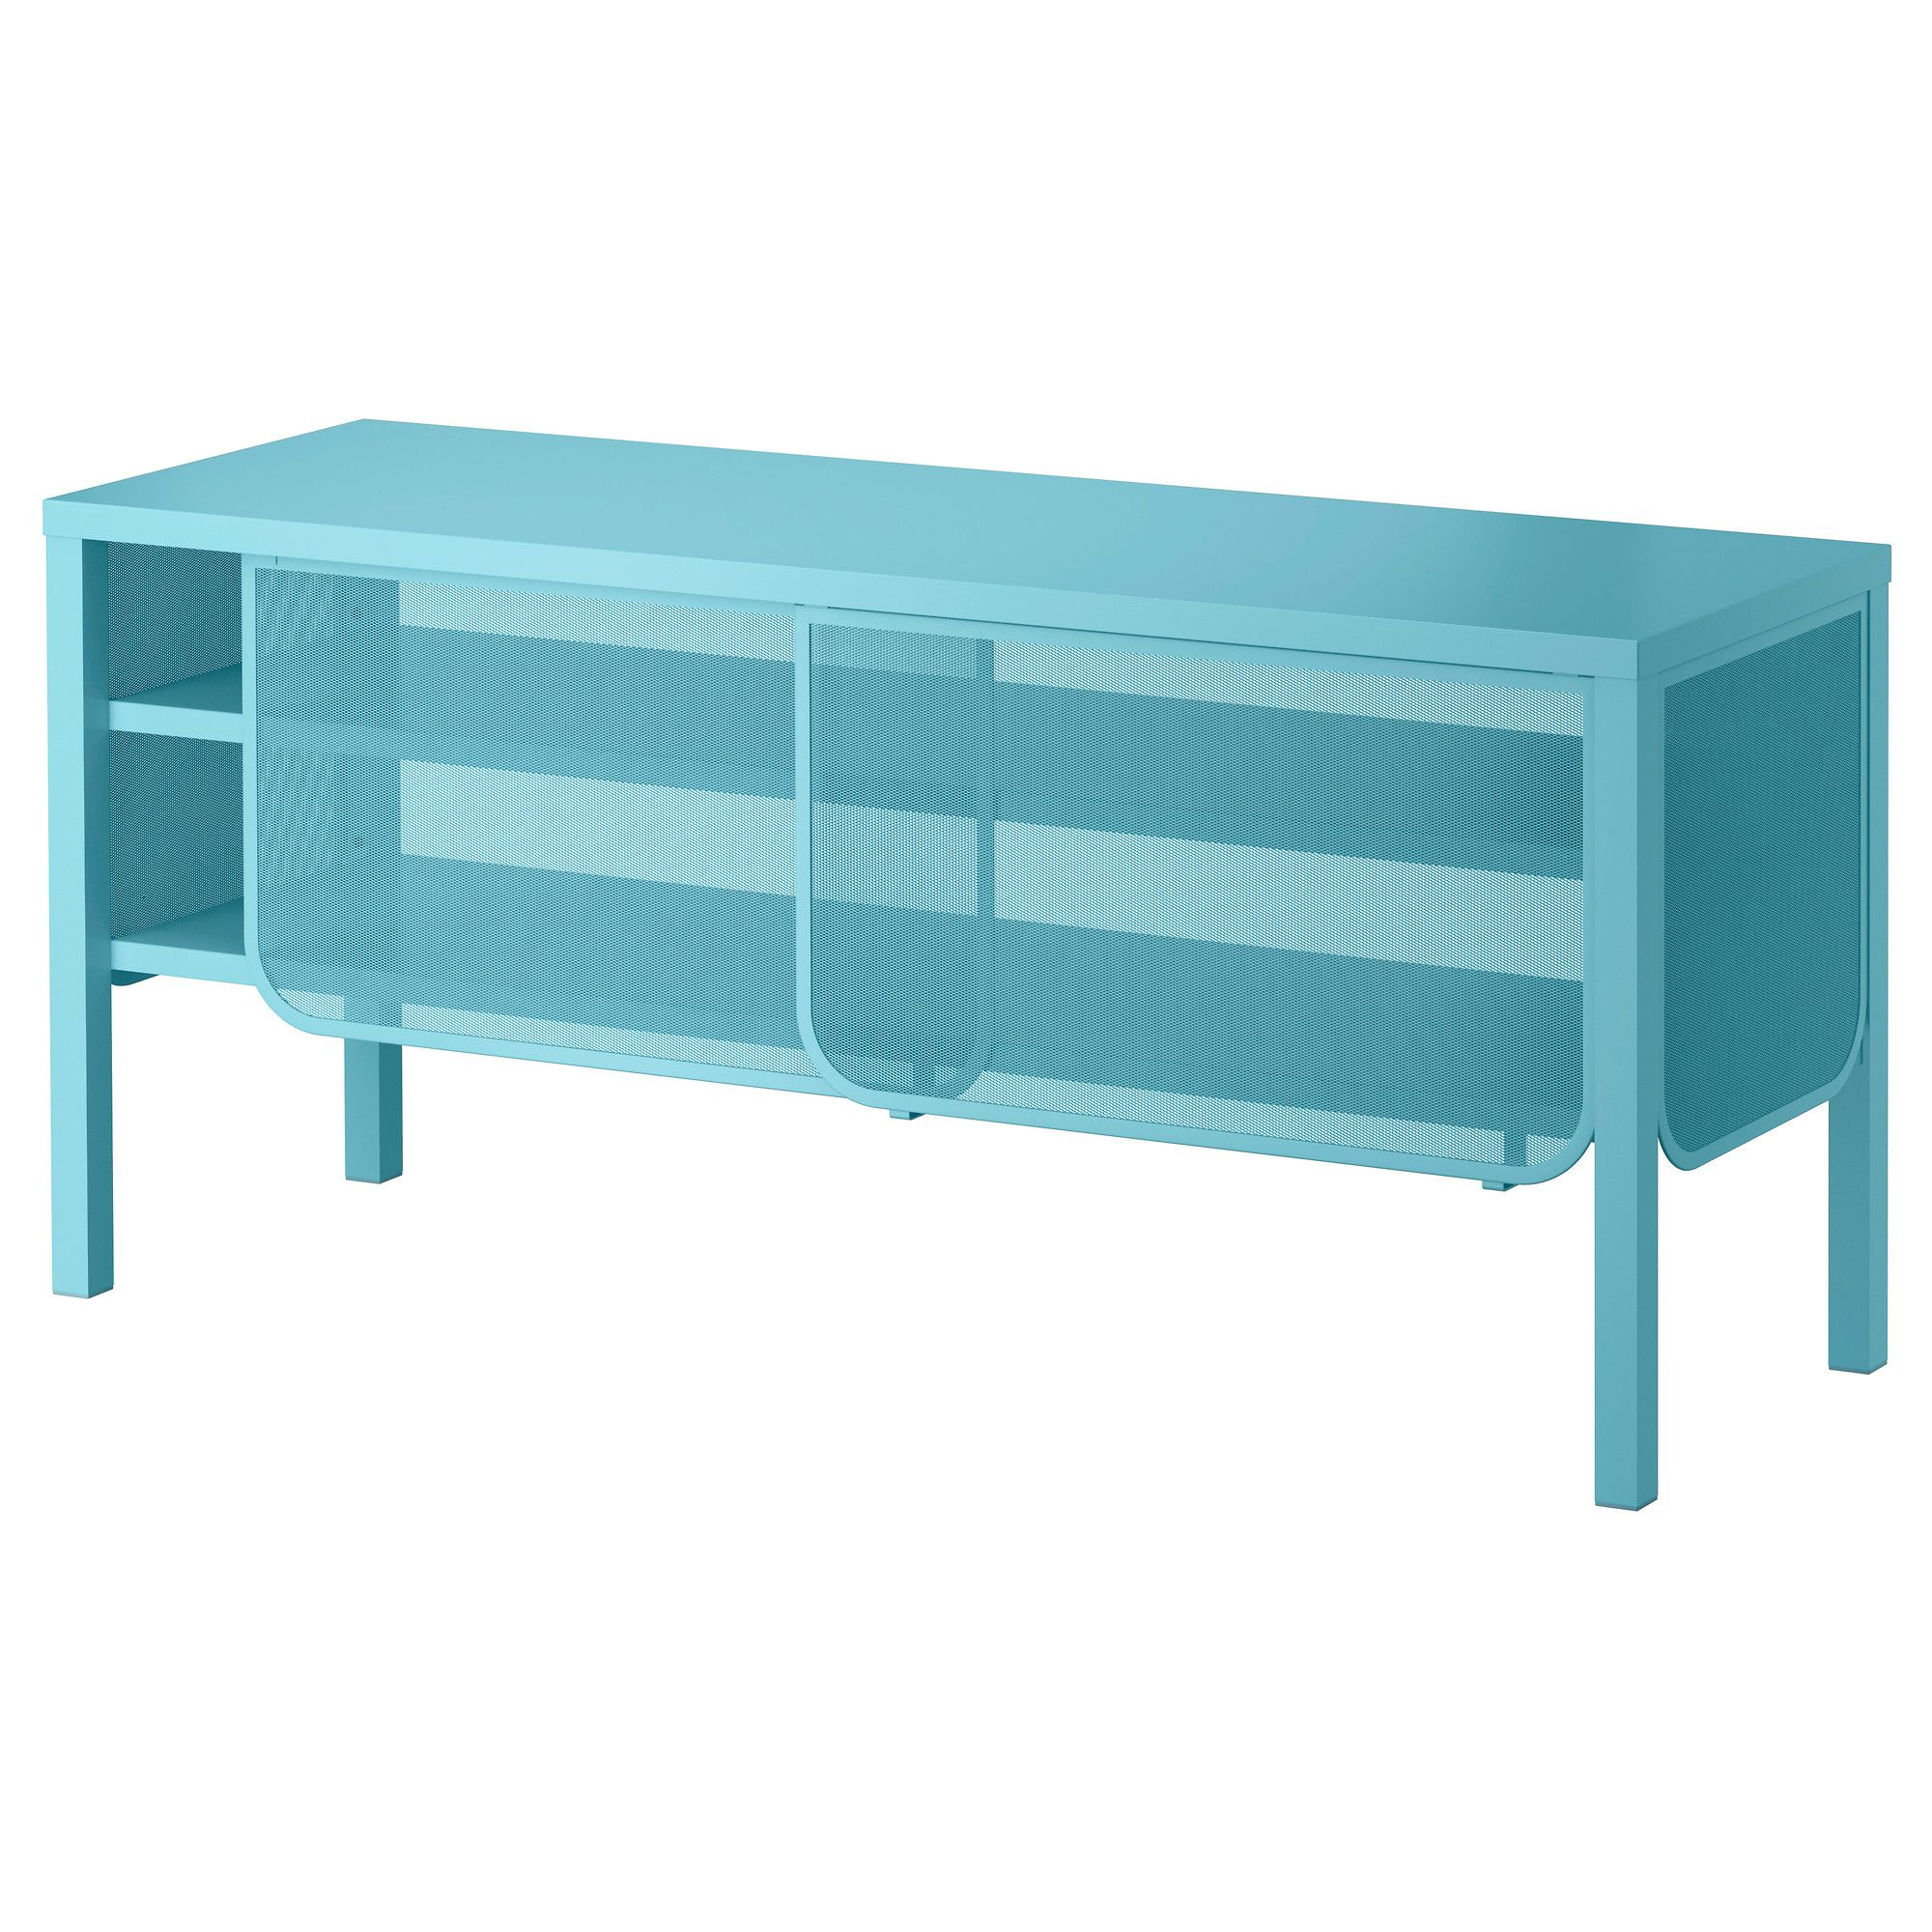 Nittorp Tv Unit Turquoise Ikea Matches The Raskog Cart  # Meuble Tv Stockholm